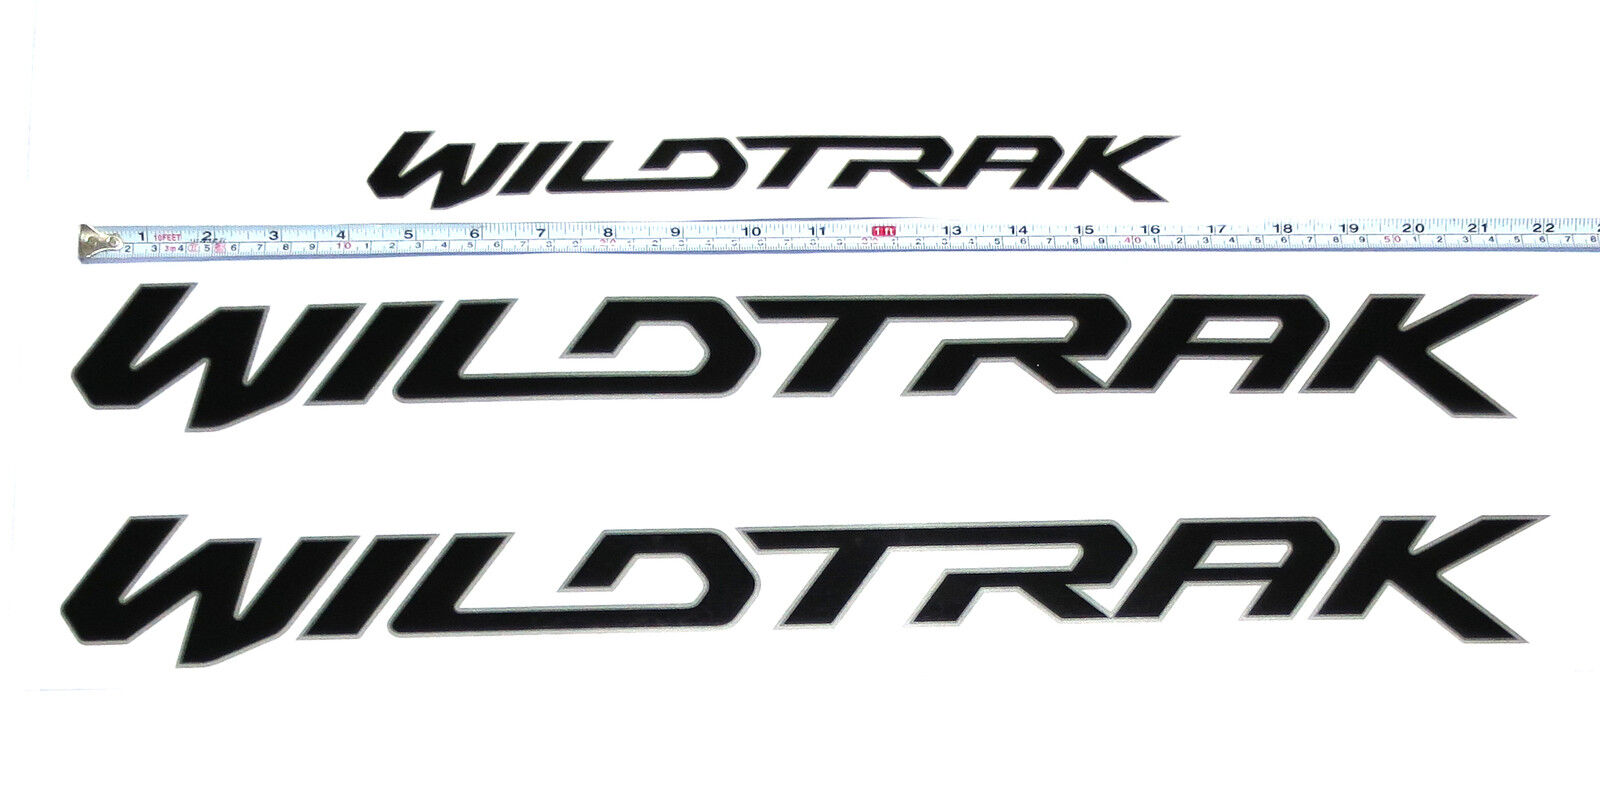 Wildtrak Rear Tailgate Logo Emblems Badge Decals Plate